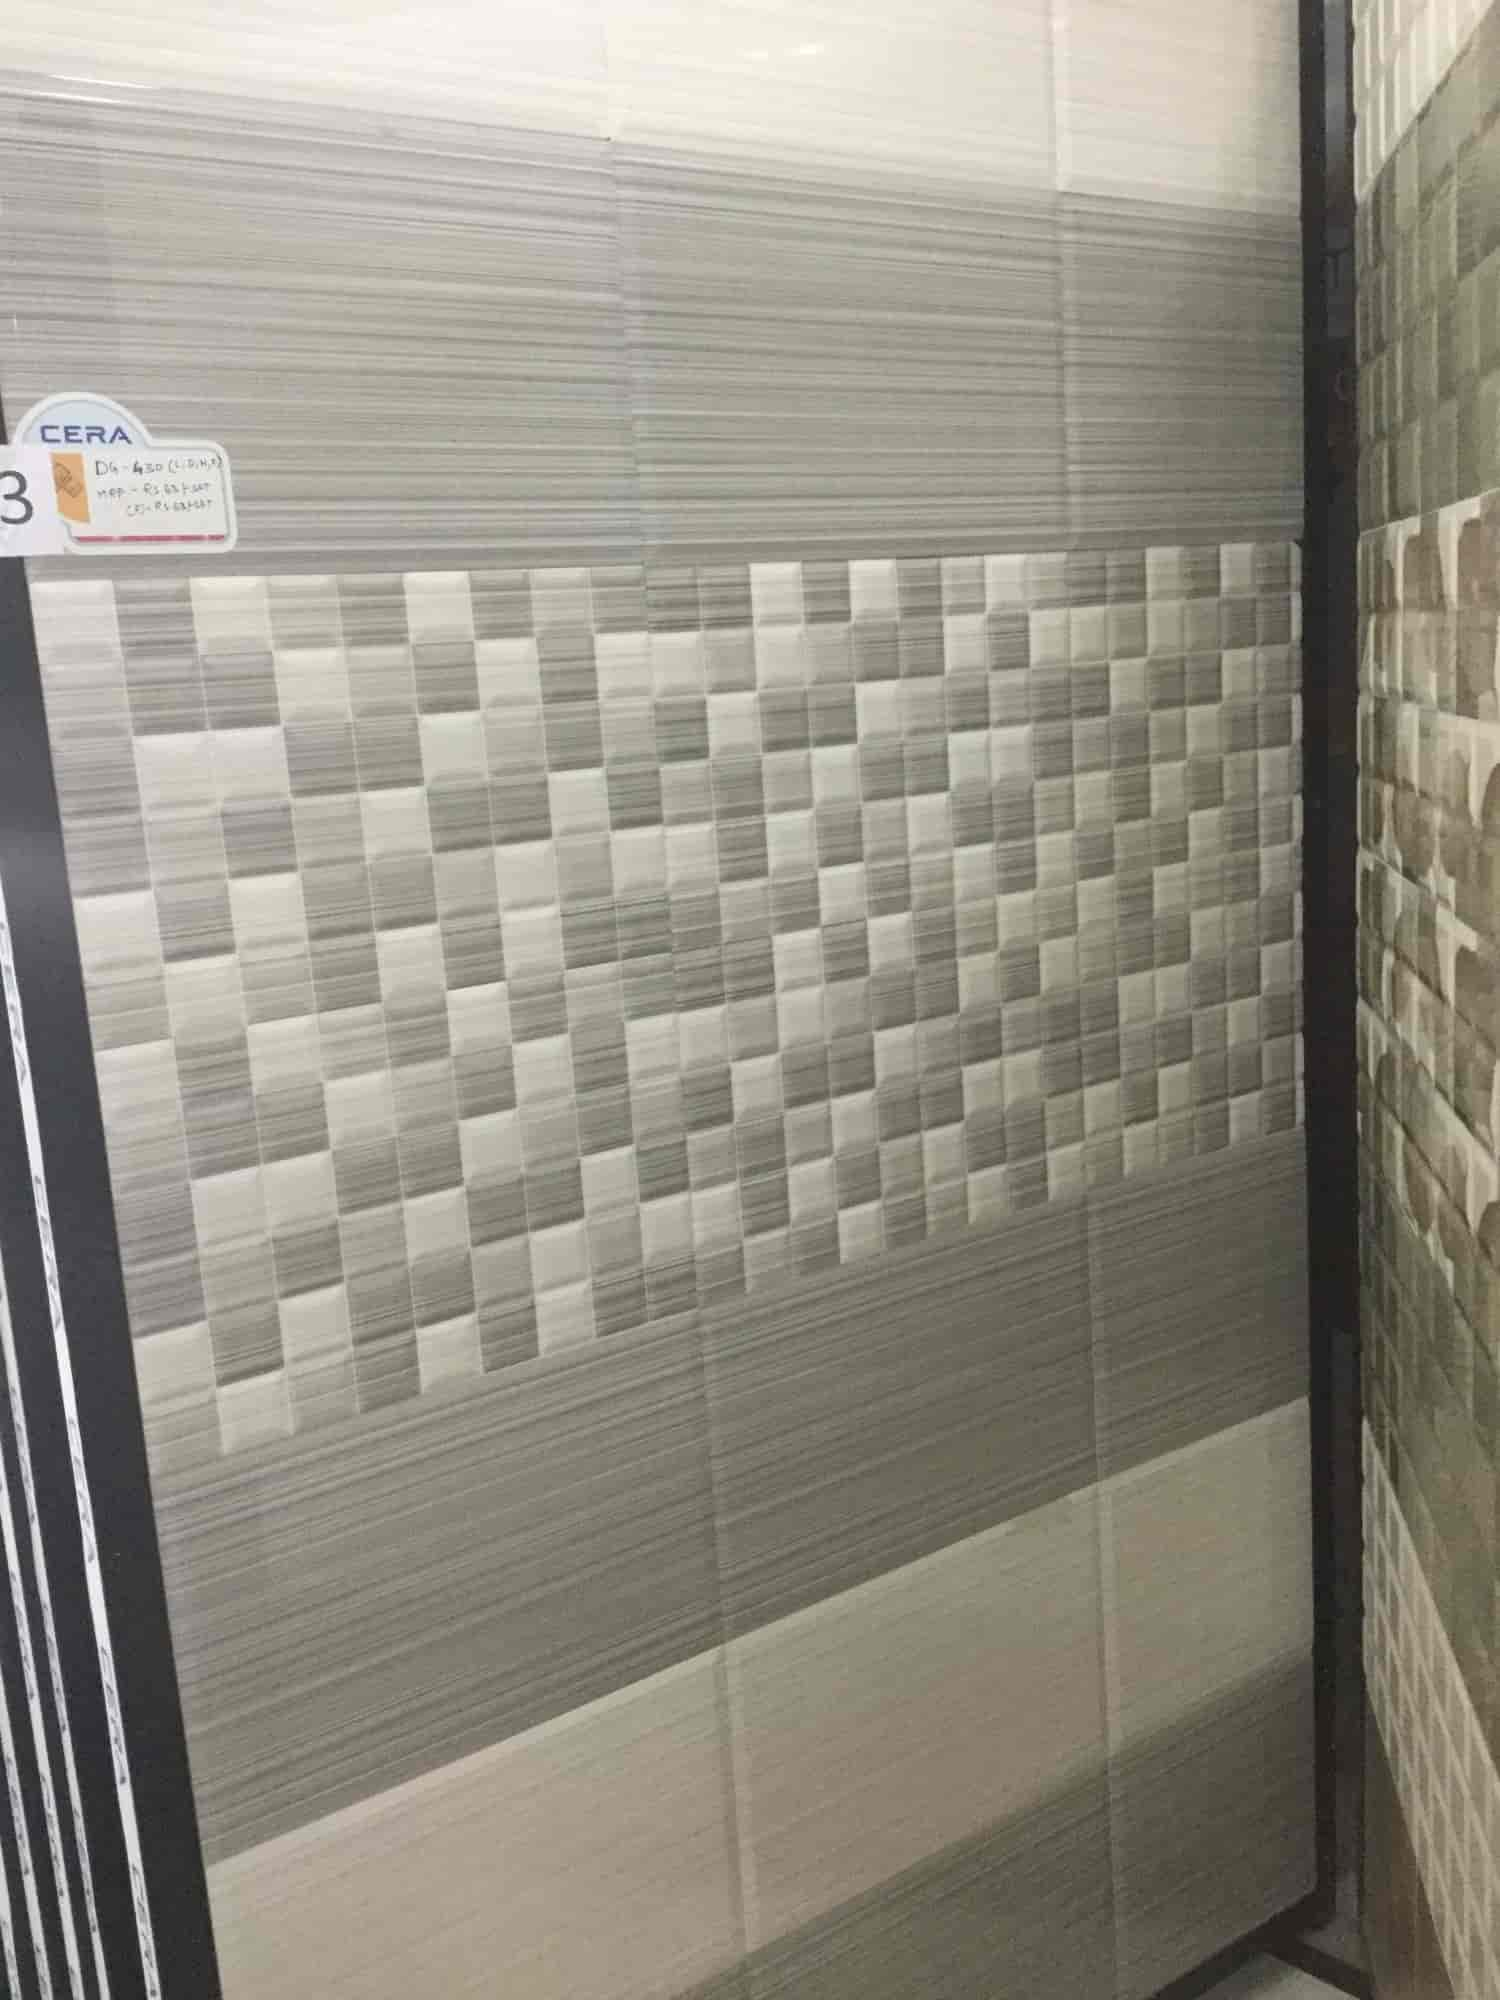 Cera The Tile Gallery Kphb Colony Sanitaryware Dealers In Hyderabad Justdial